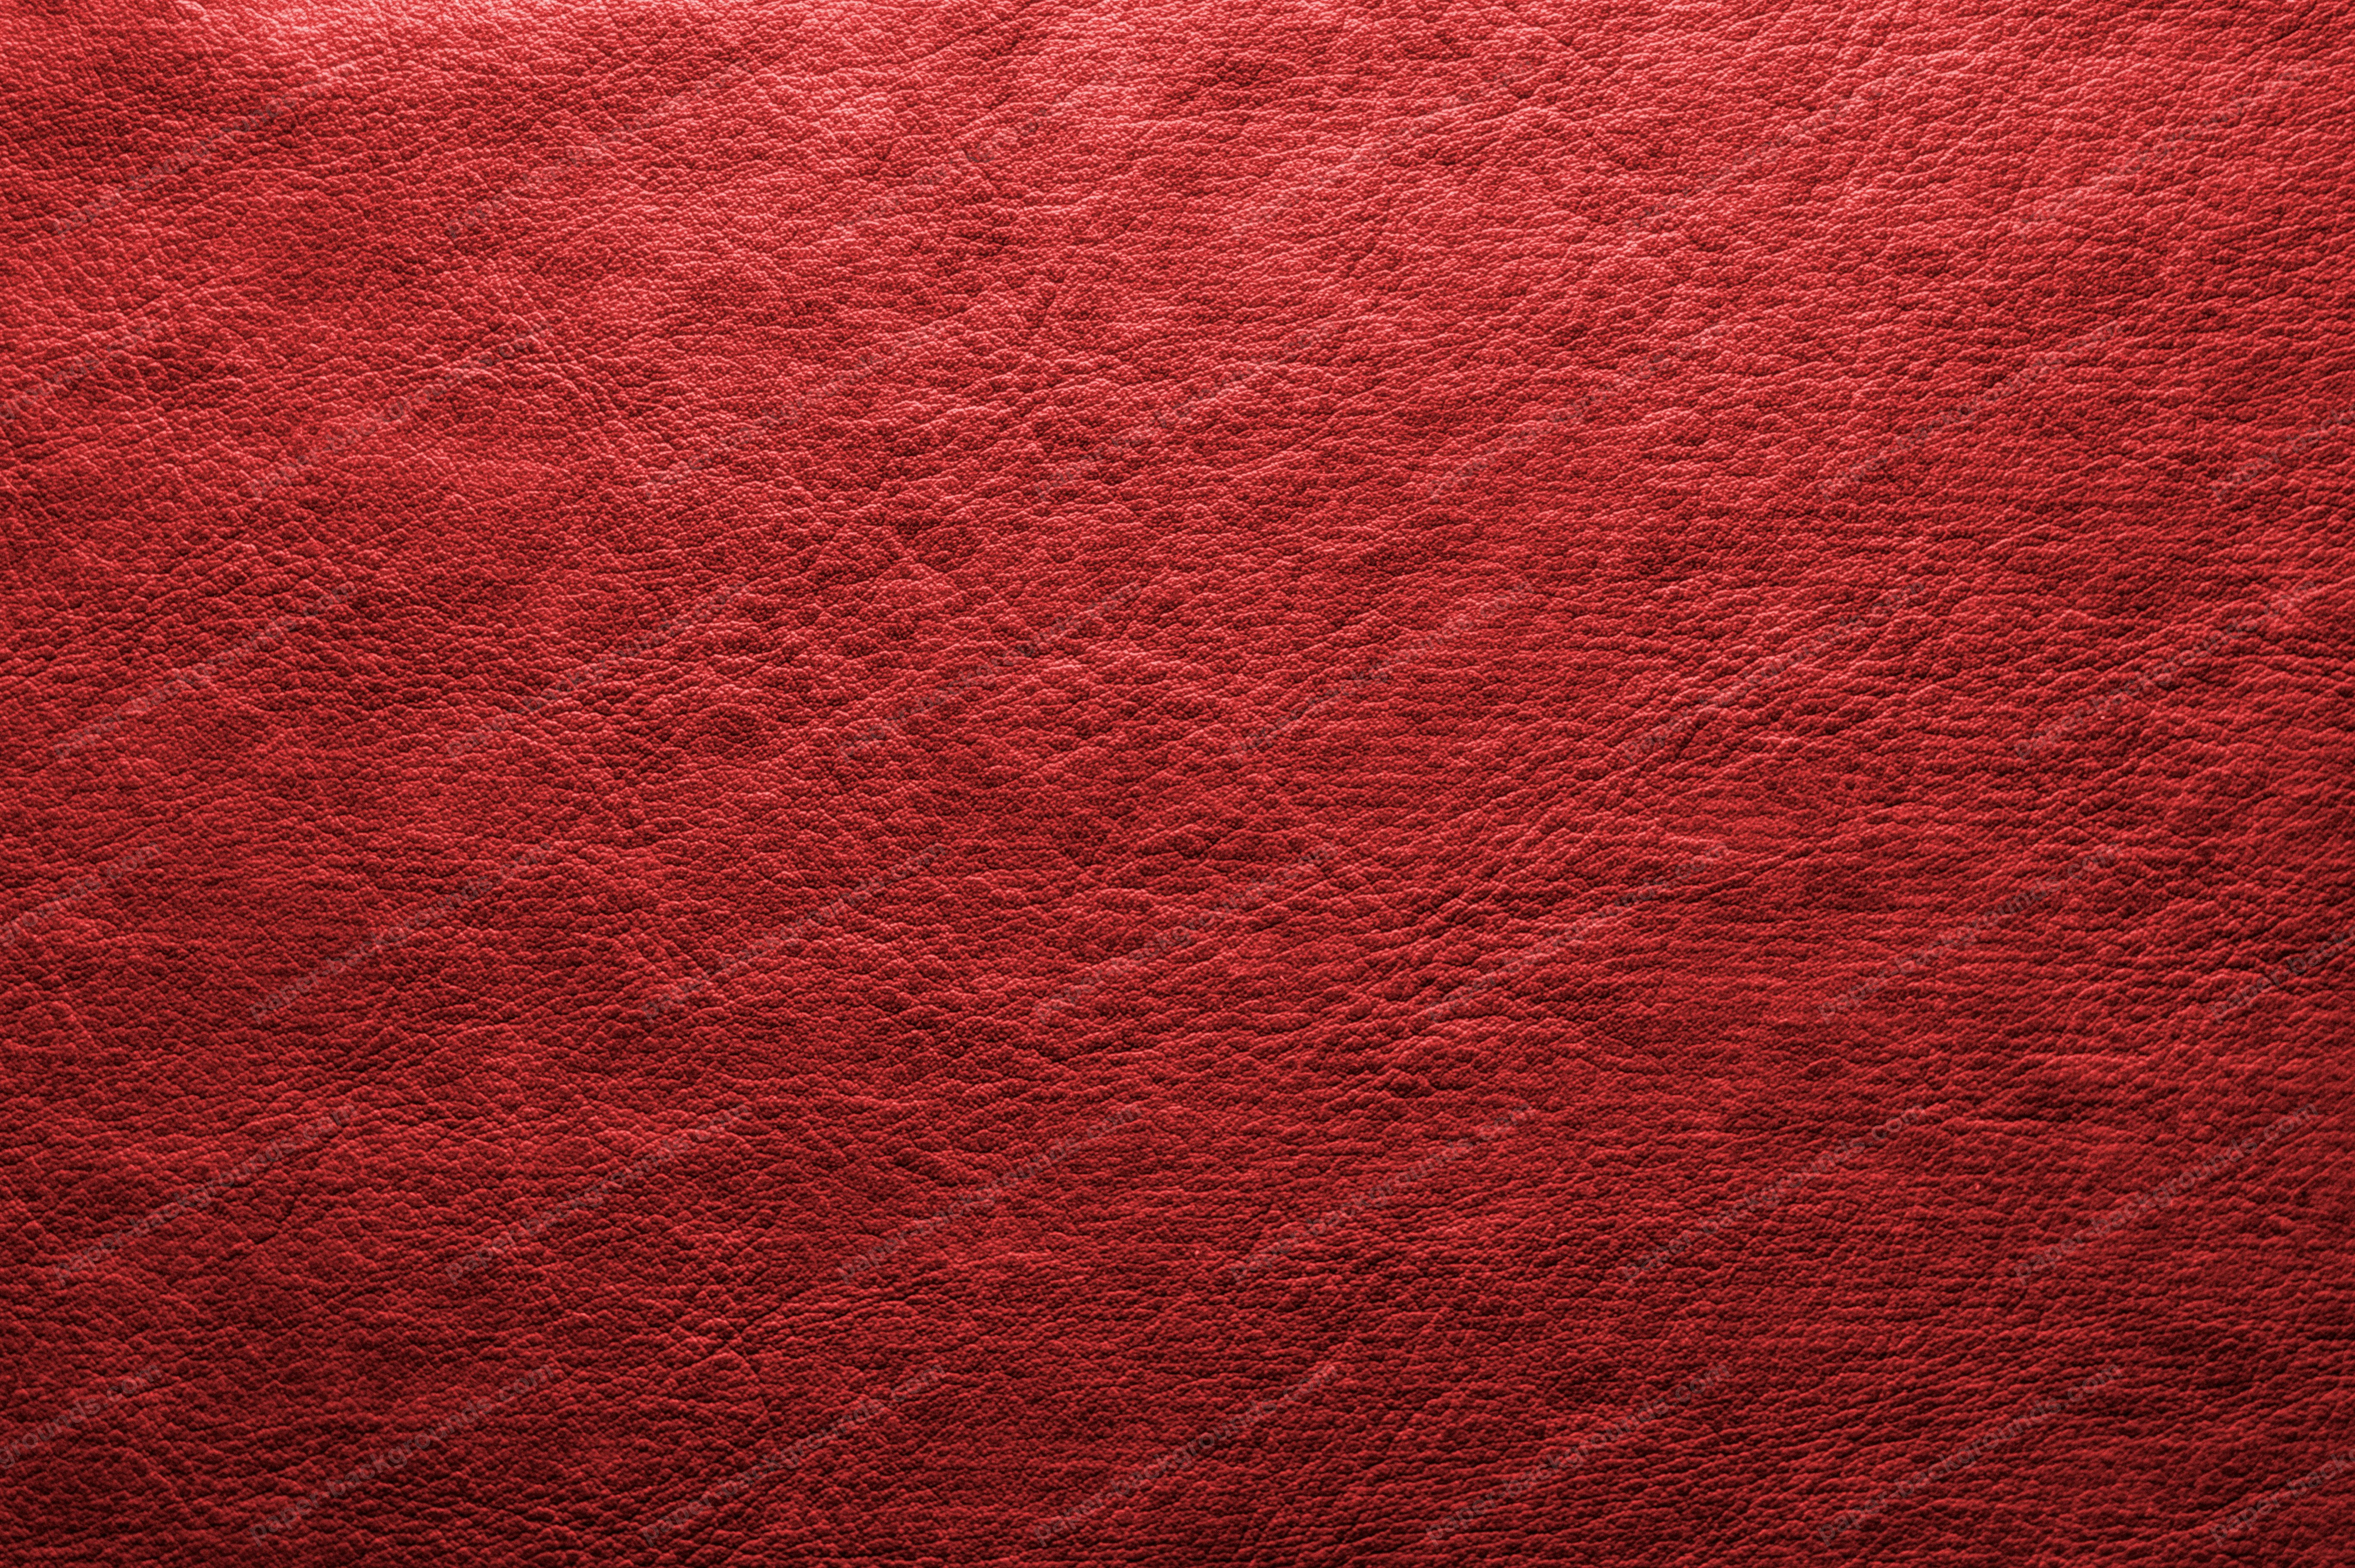 Free Download Abstract Red Leather Background Paper